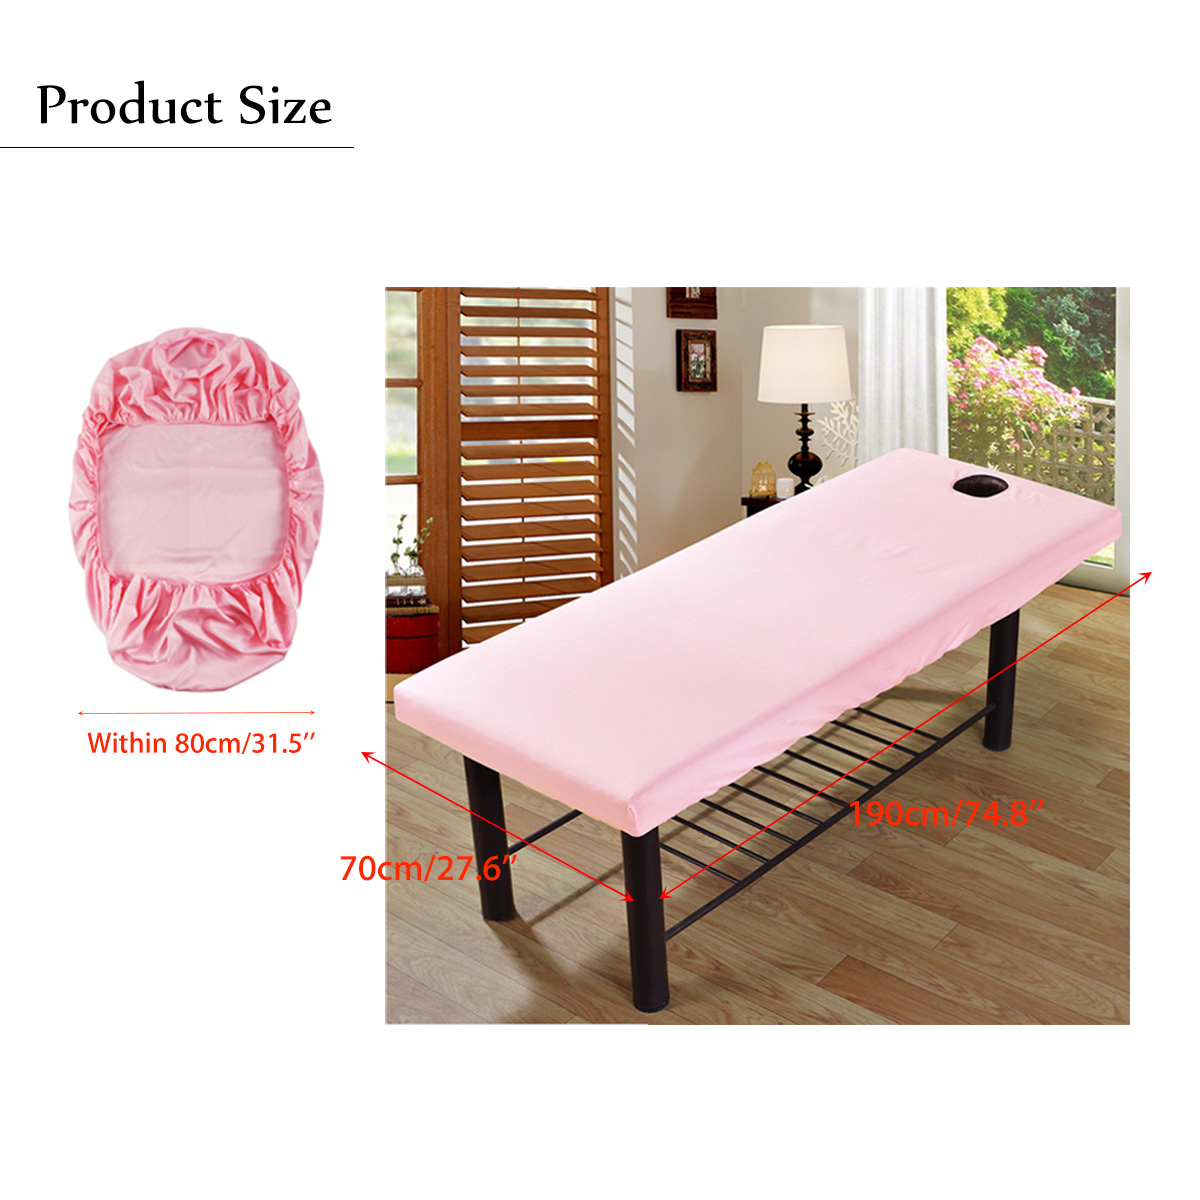 Soft Polyester Massage Bed Cover Beauty Salon Massage Sheet Body SPA Treatment Relaxation Bedsheet With Face Breath Hole 6